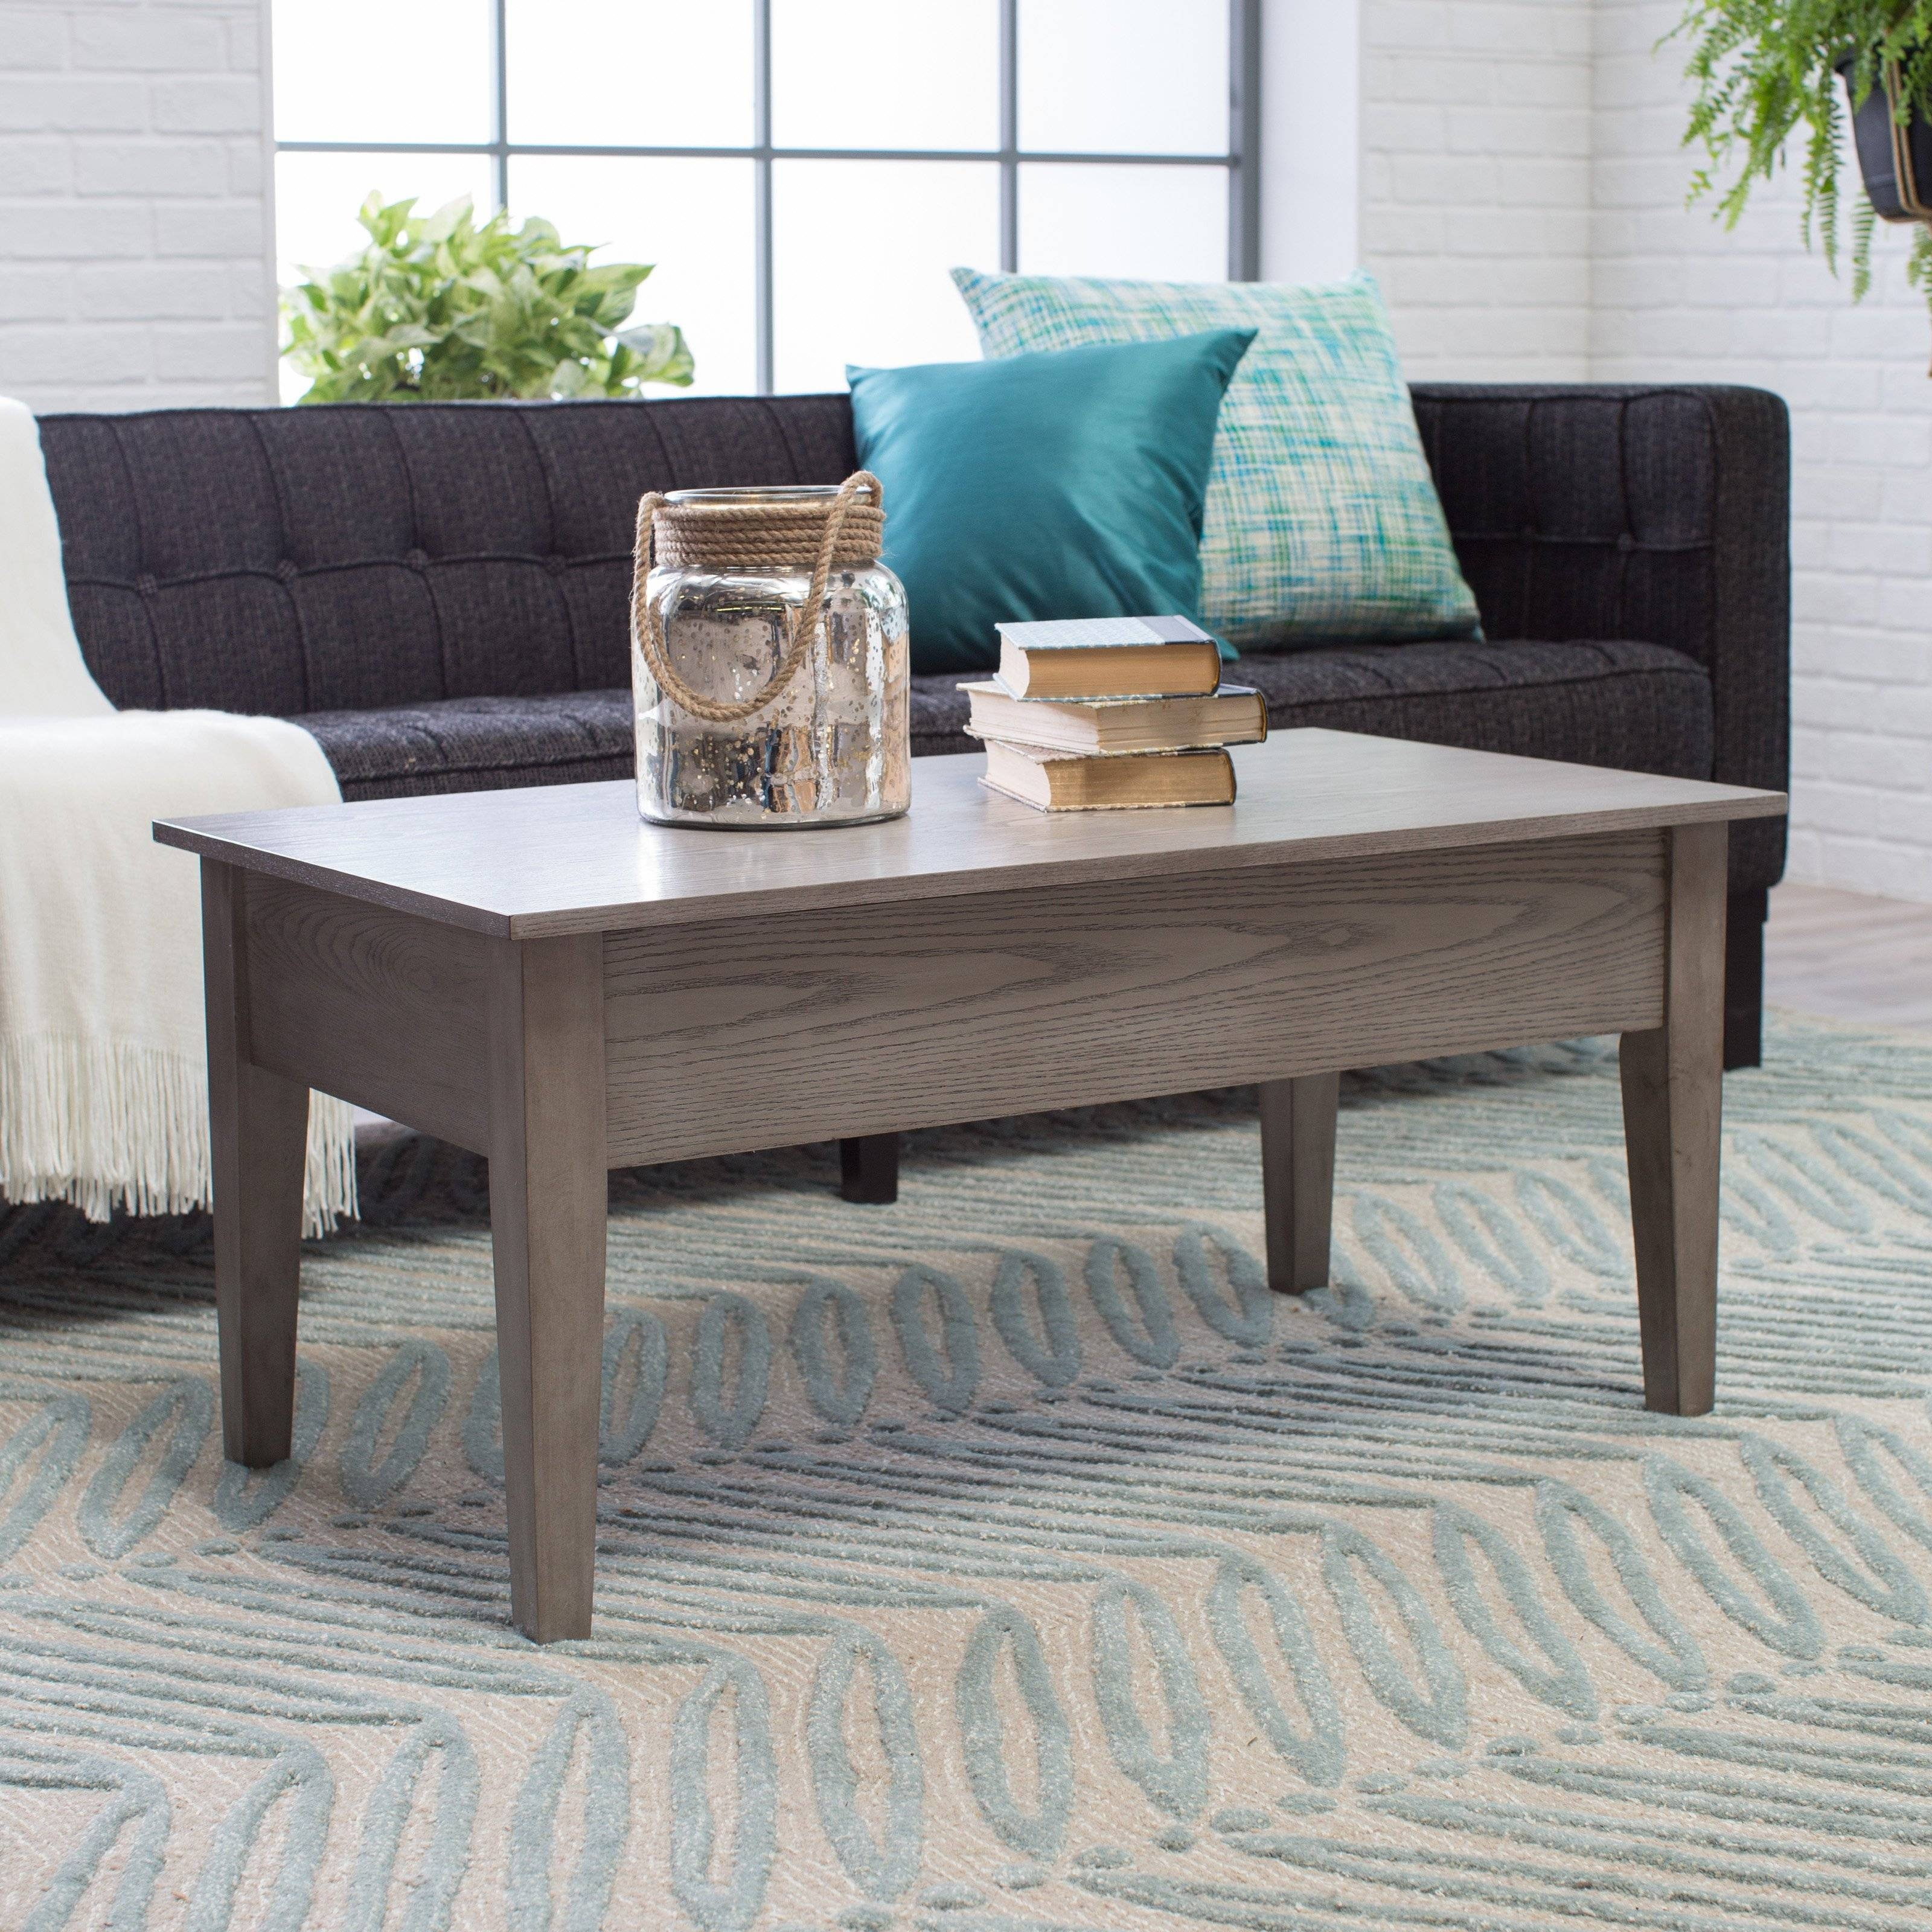 International Concepts Bombay Solid Wood Lift Top Coffee Table regarding Coffee Tables Extendable Top (Image 15 of 30)